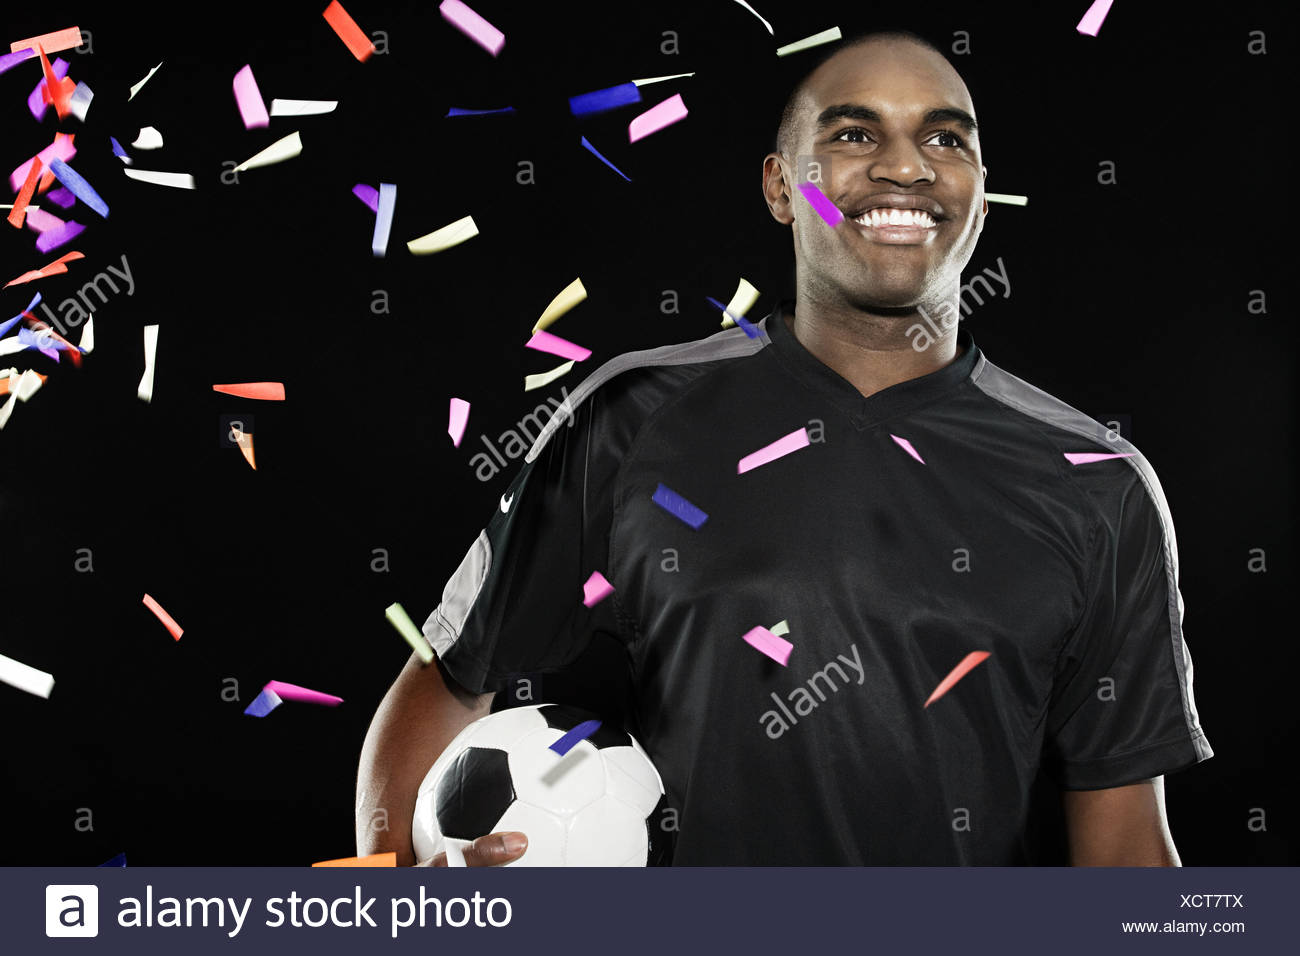 Footballer with falling confetti - Stock Image